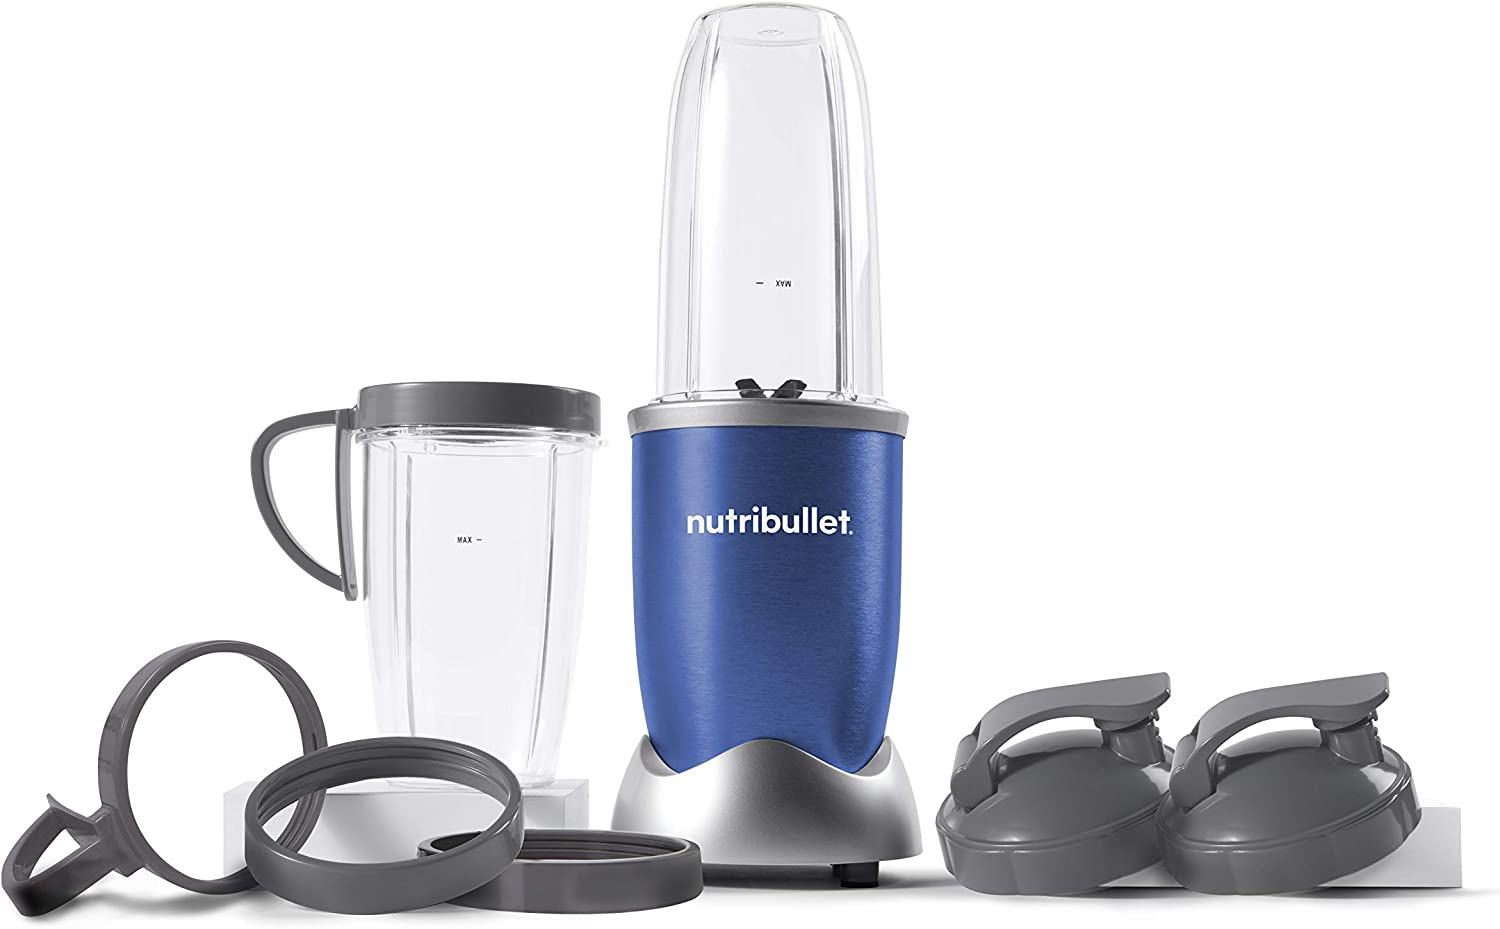 NutriBullet NB9-1301G Pro Pro-13 Pcs, 12.01 x 7.72 x 15.94: Amazon ...